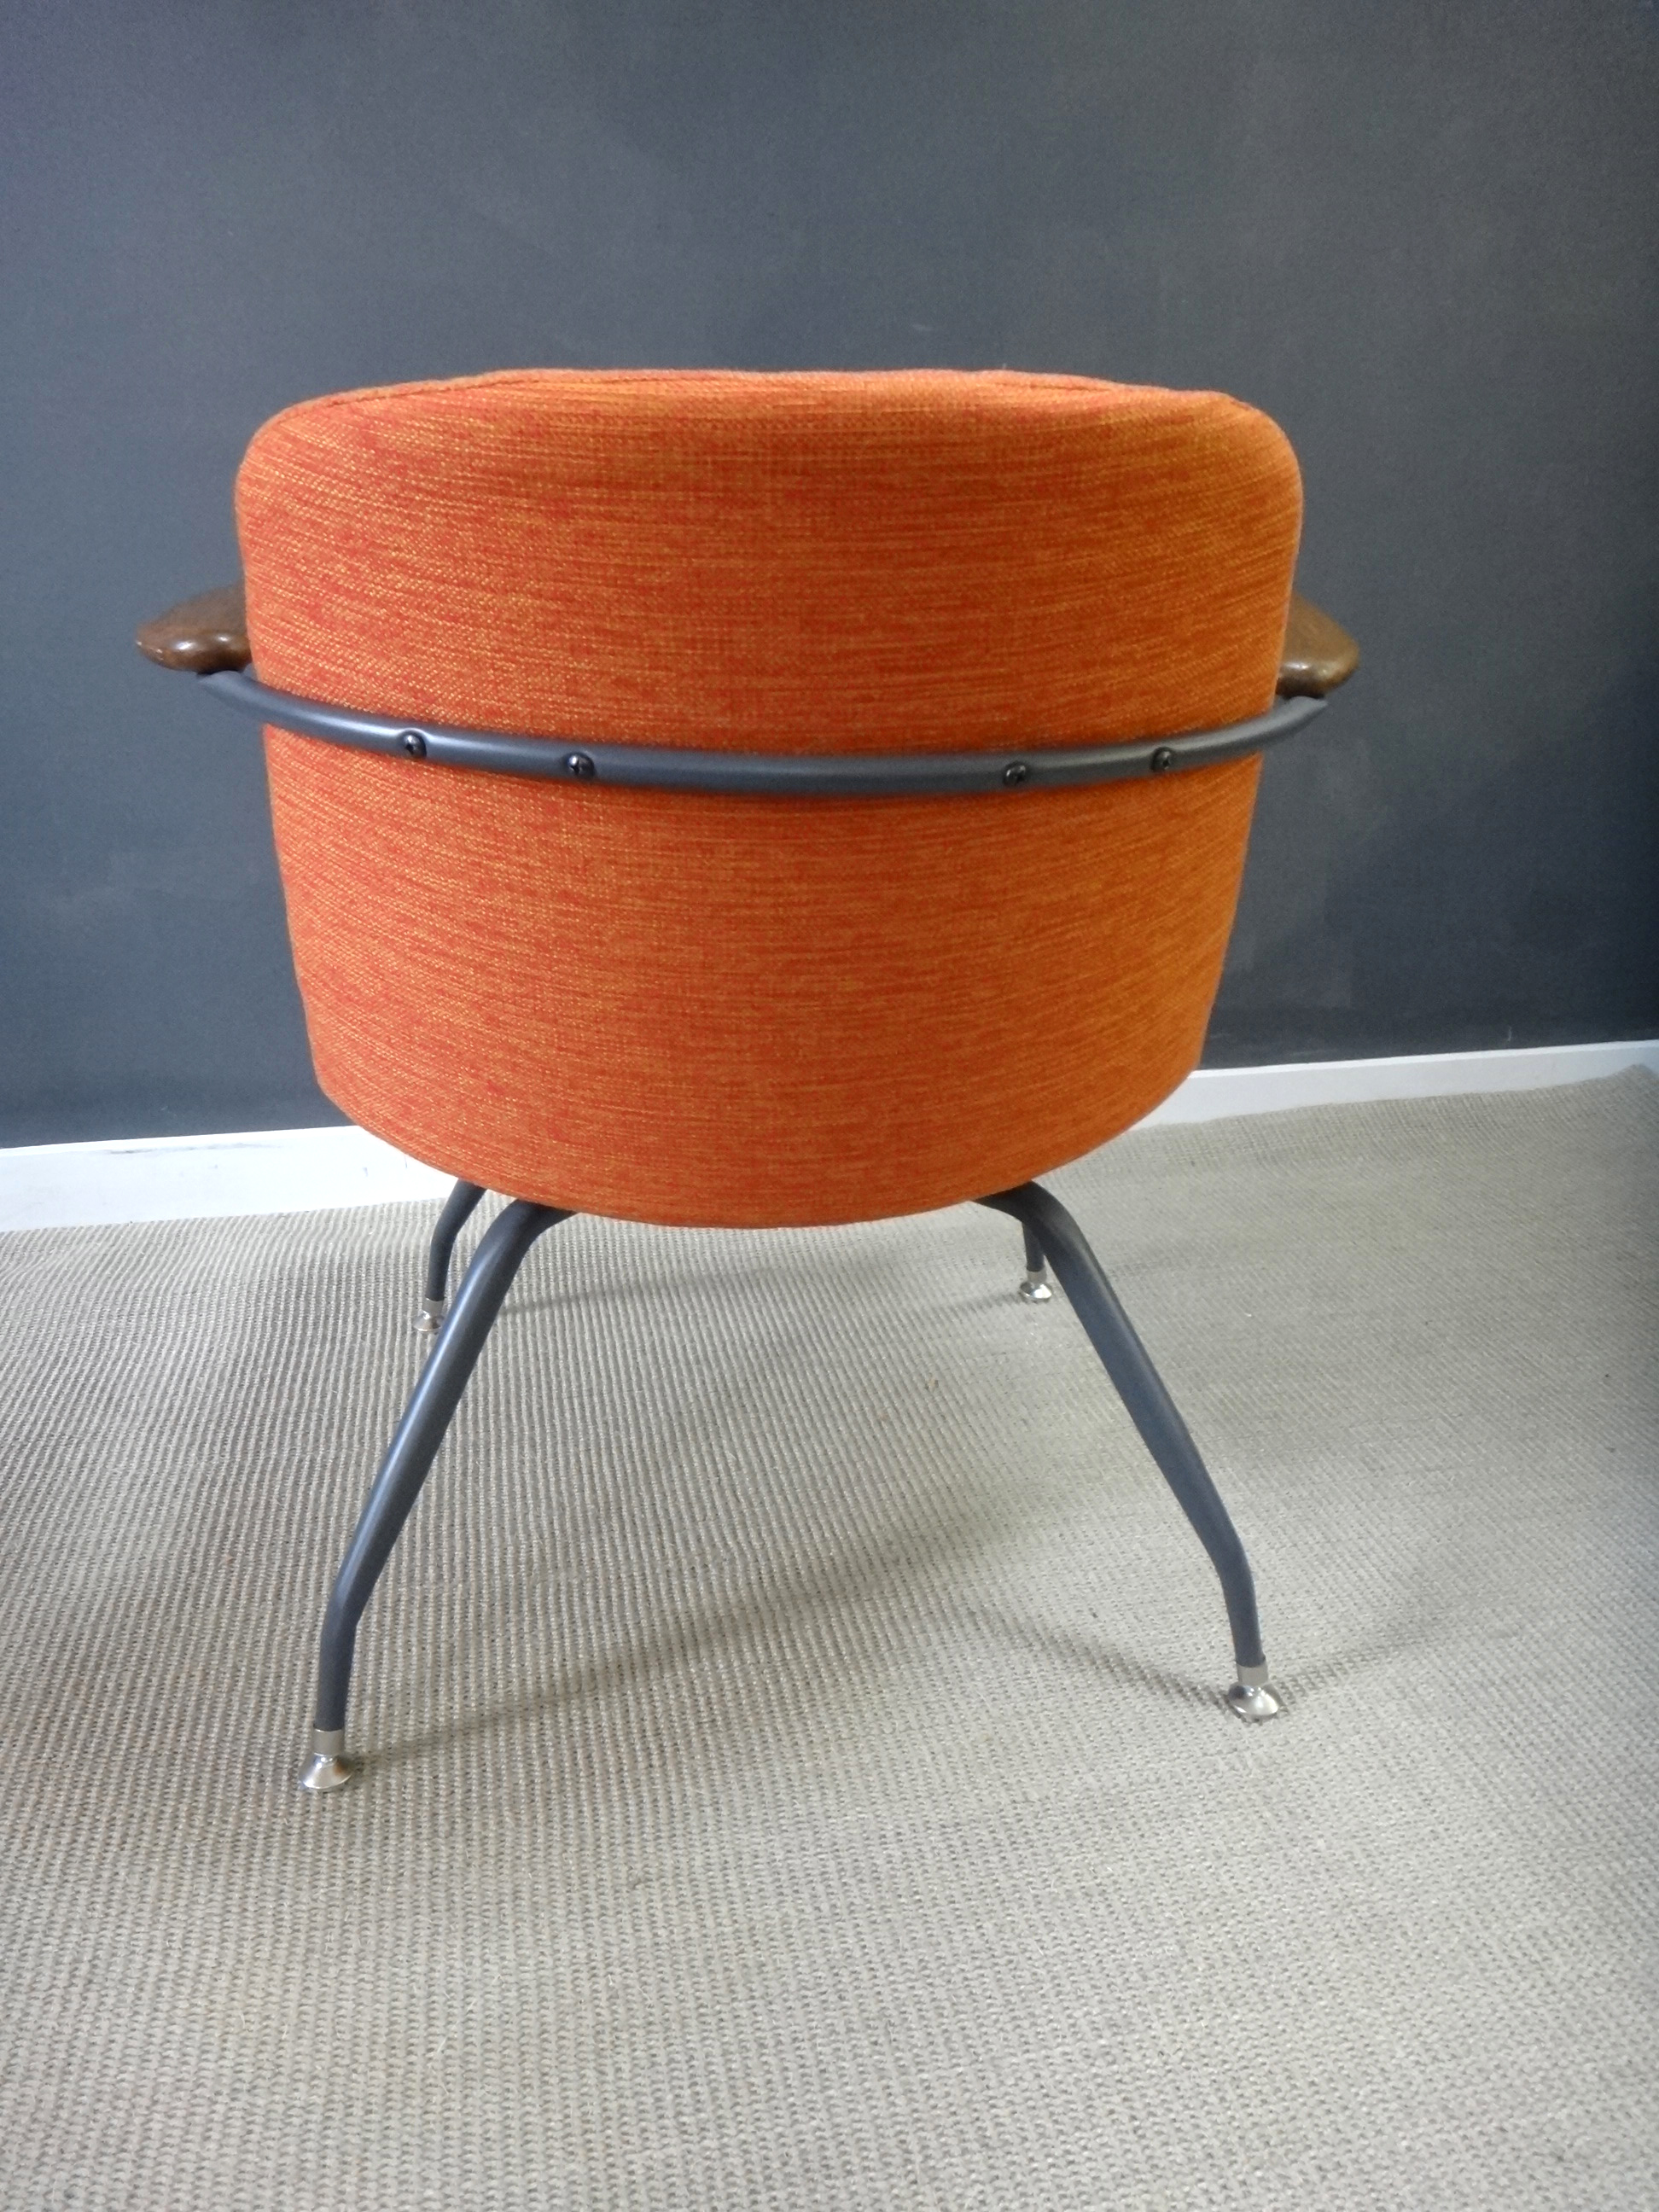 ... Pair Mid Century Upholstered Seng Chairs & Pair Mid Century Upholstered Seng Chairs - Retrocraft Design ...